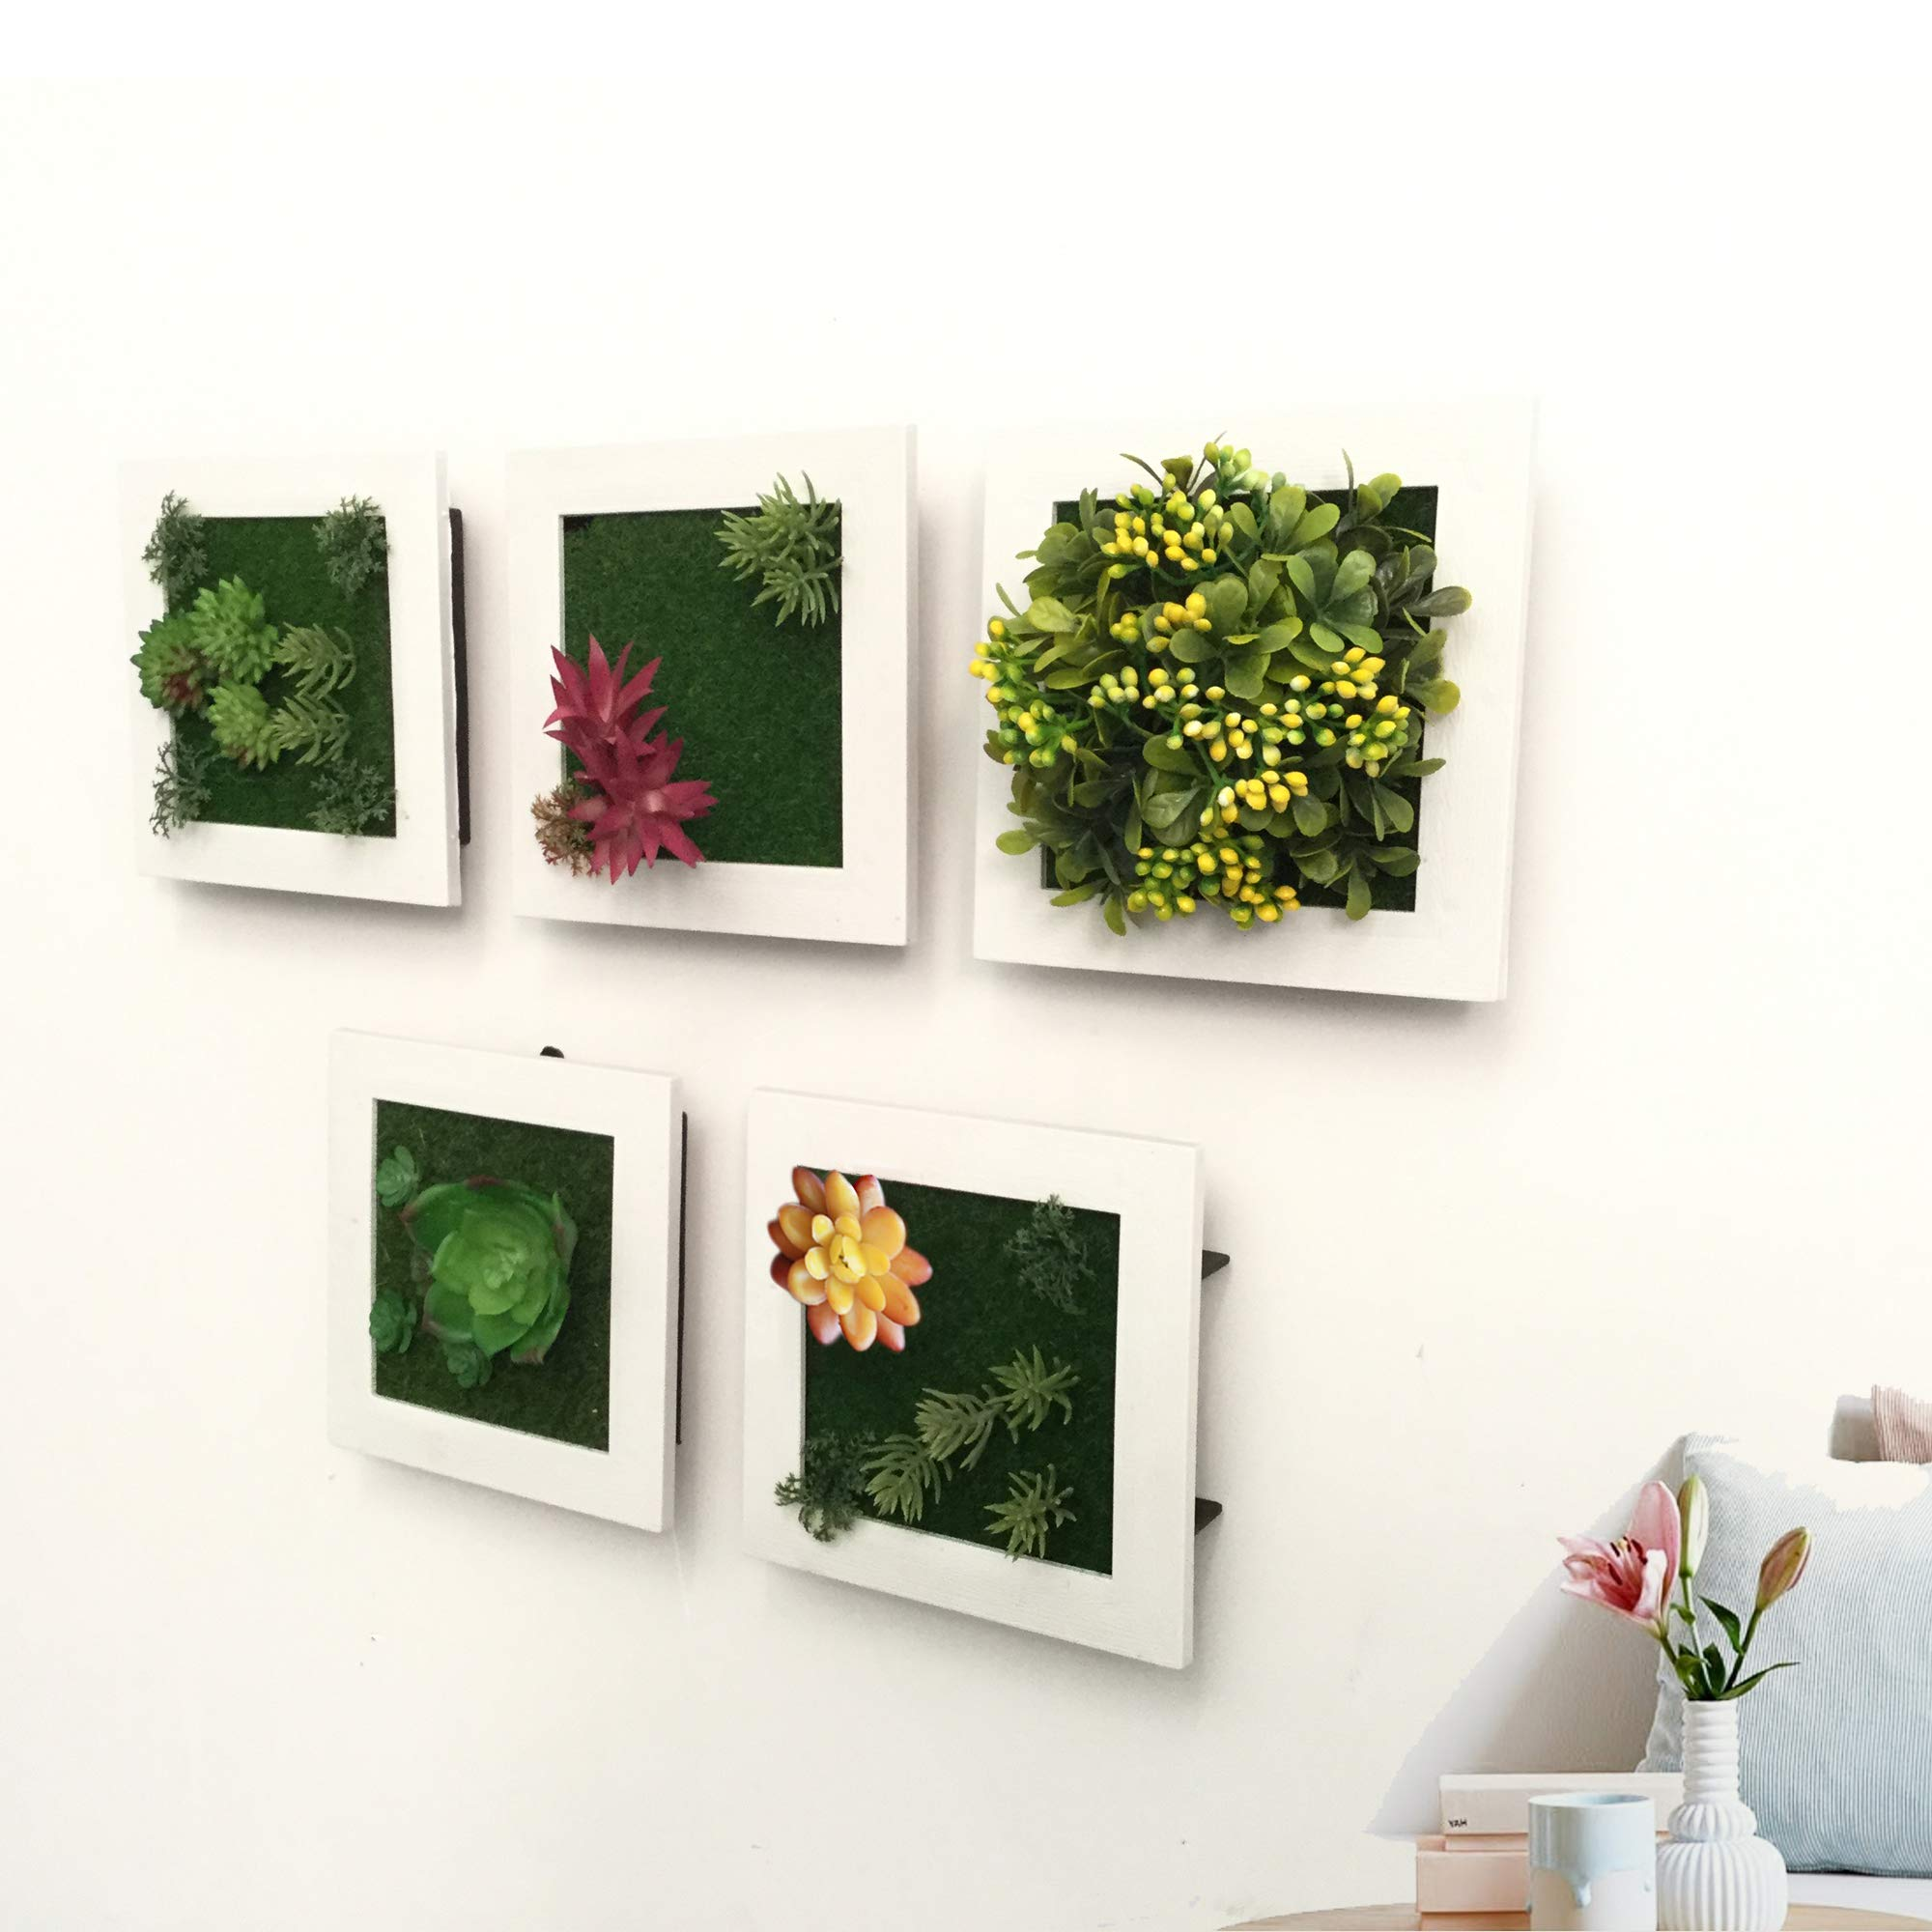 Artificial Plant Frame Wall Hanging for Indoor Wall Decor Tabletop 3D Faux Succulents for Home/Living Room/Bedroom/Cafe Decorative, Set of 5